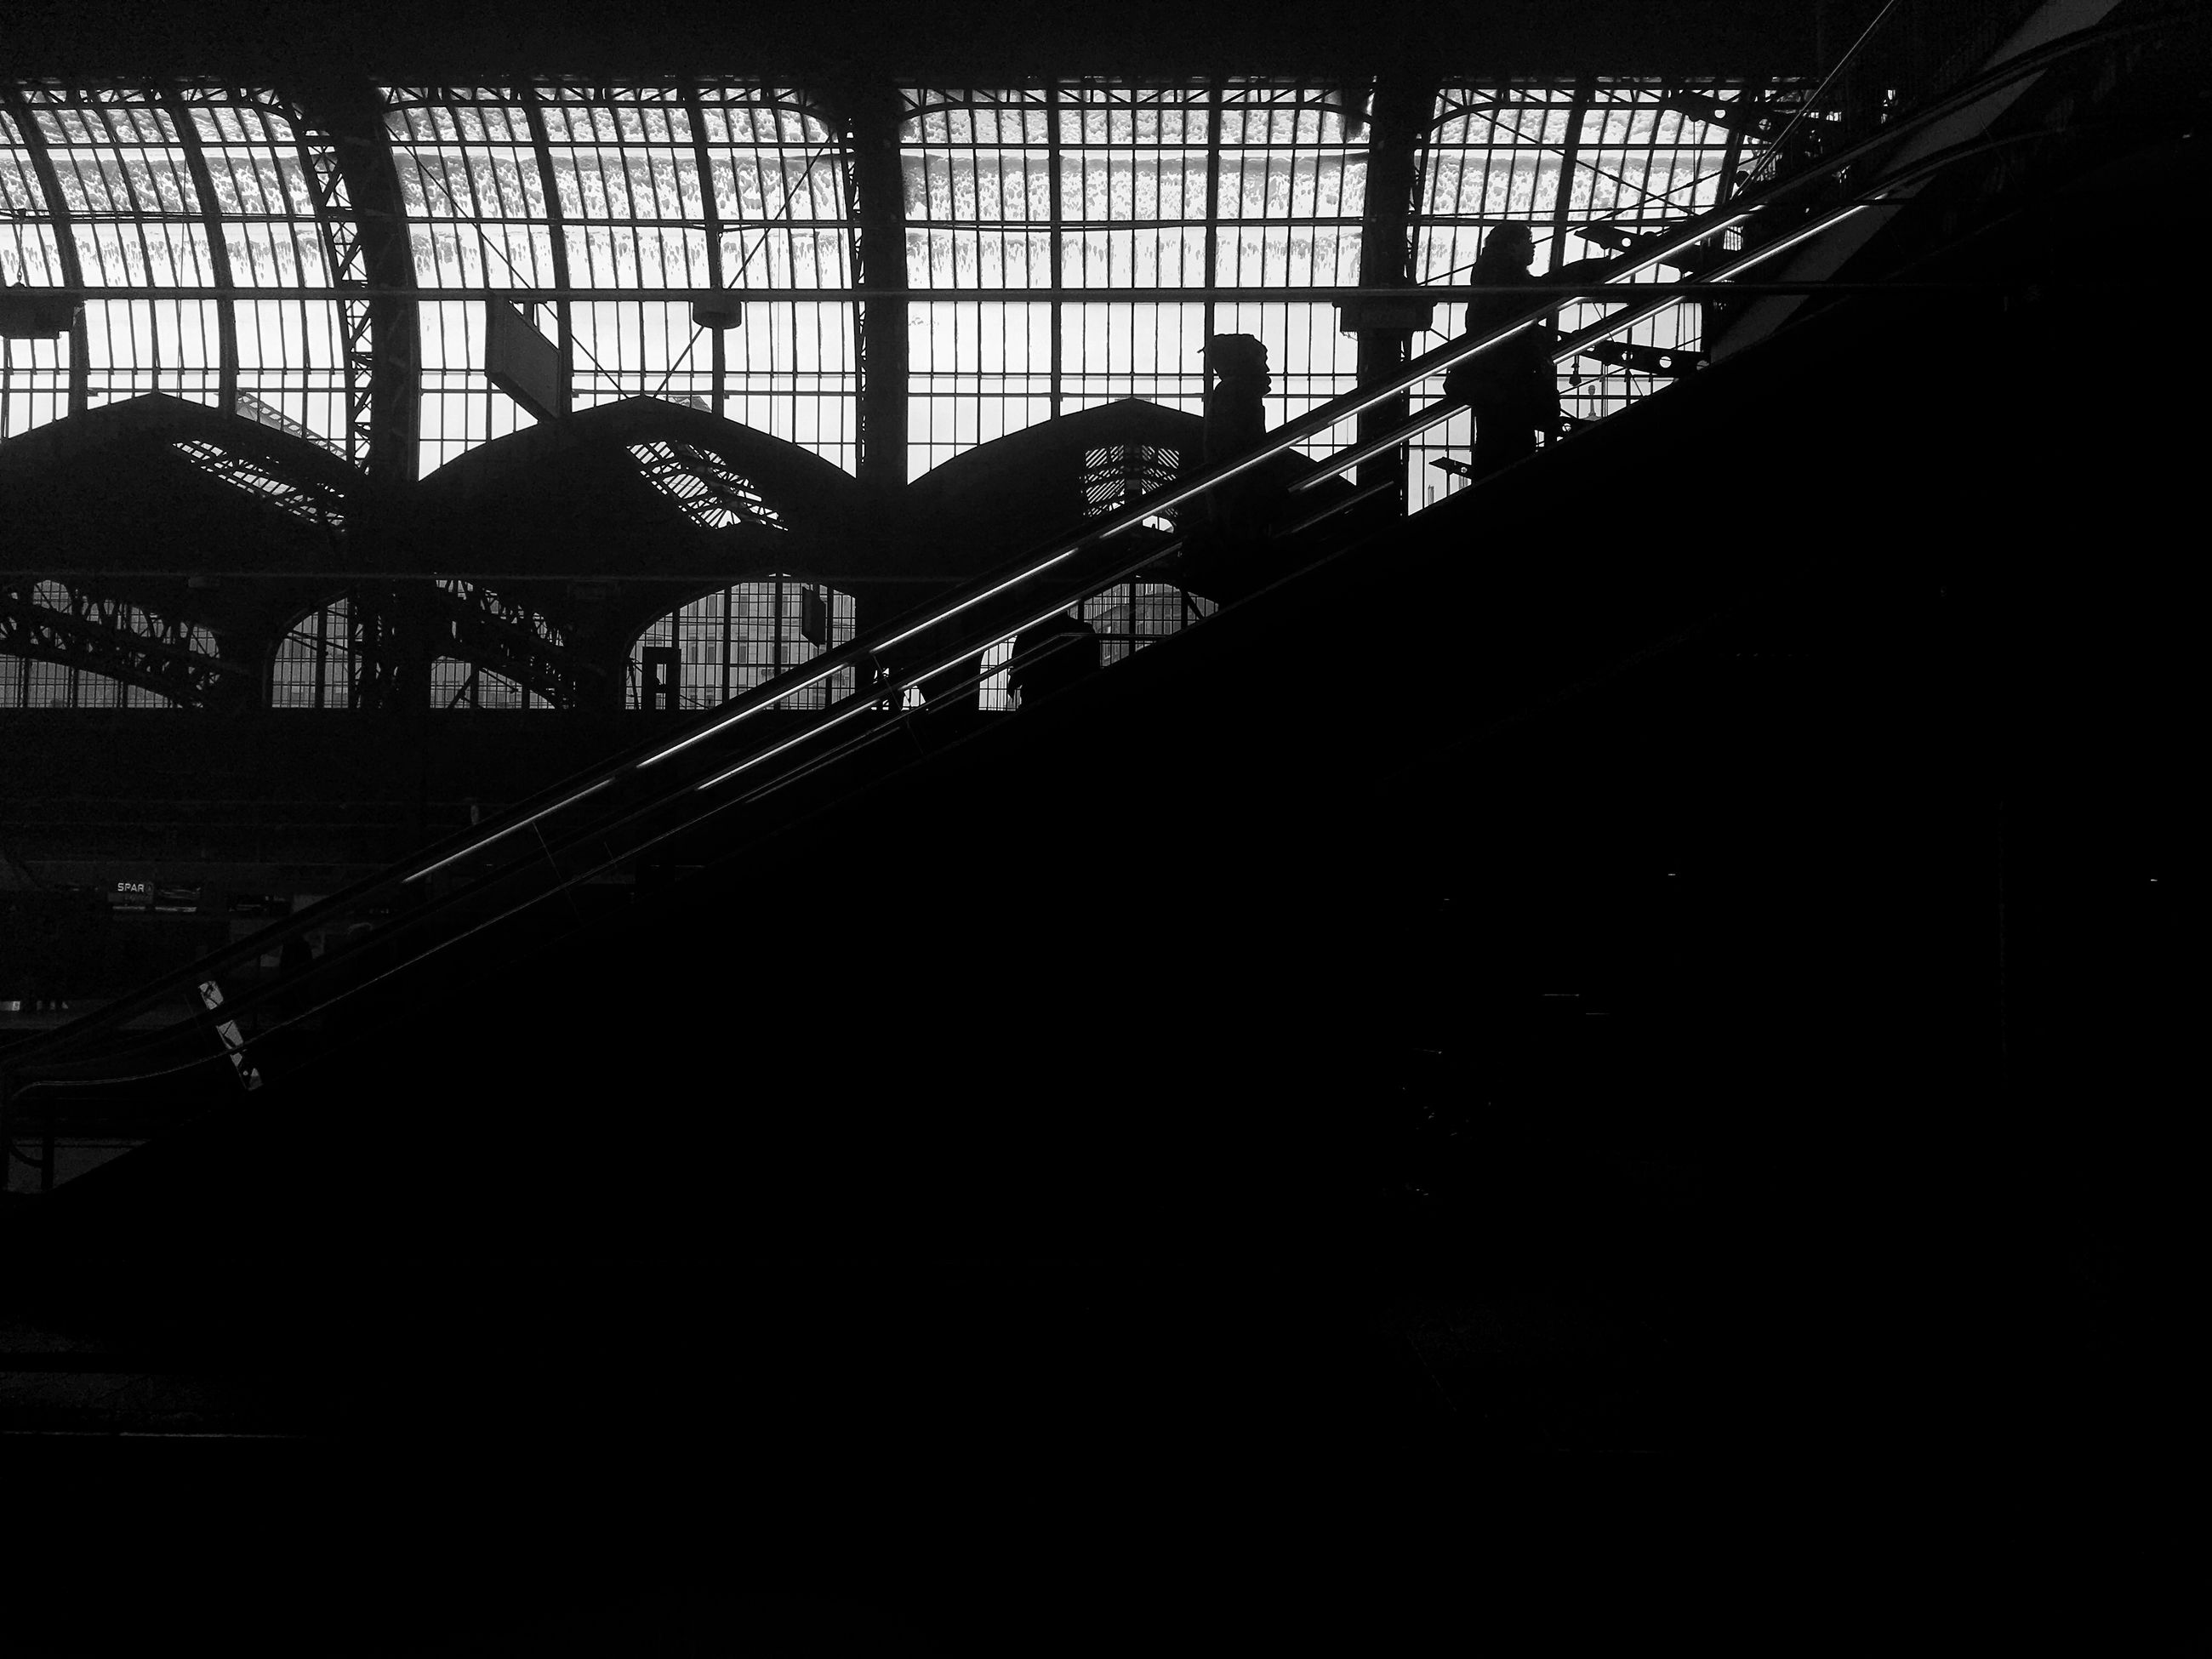 architecture, built structure, indoors, metal, low angle view, railing, silhouette, building exterior, window, no people, building, day, sunlight, metallic, illuminated, railroad track, ceiling, interior, rail transportation, dark